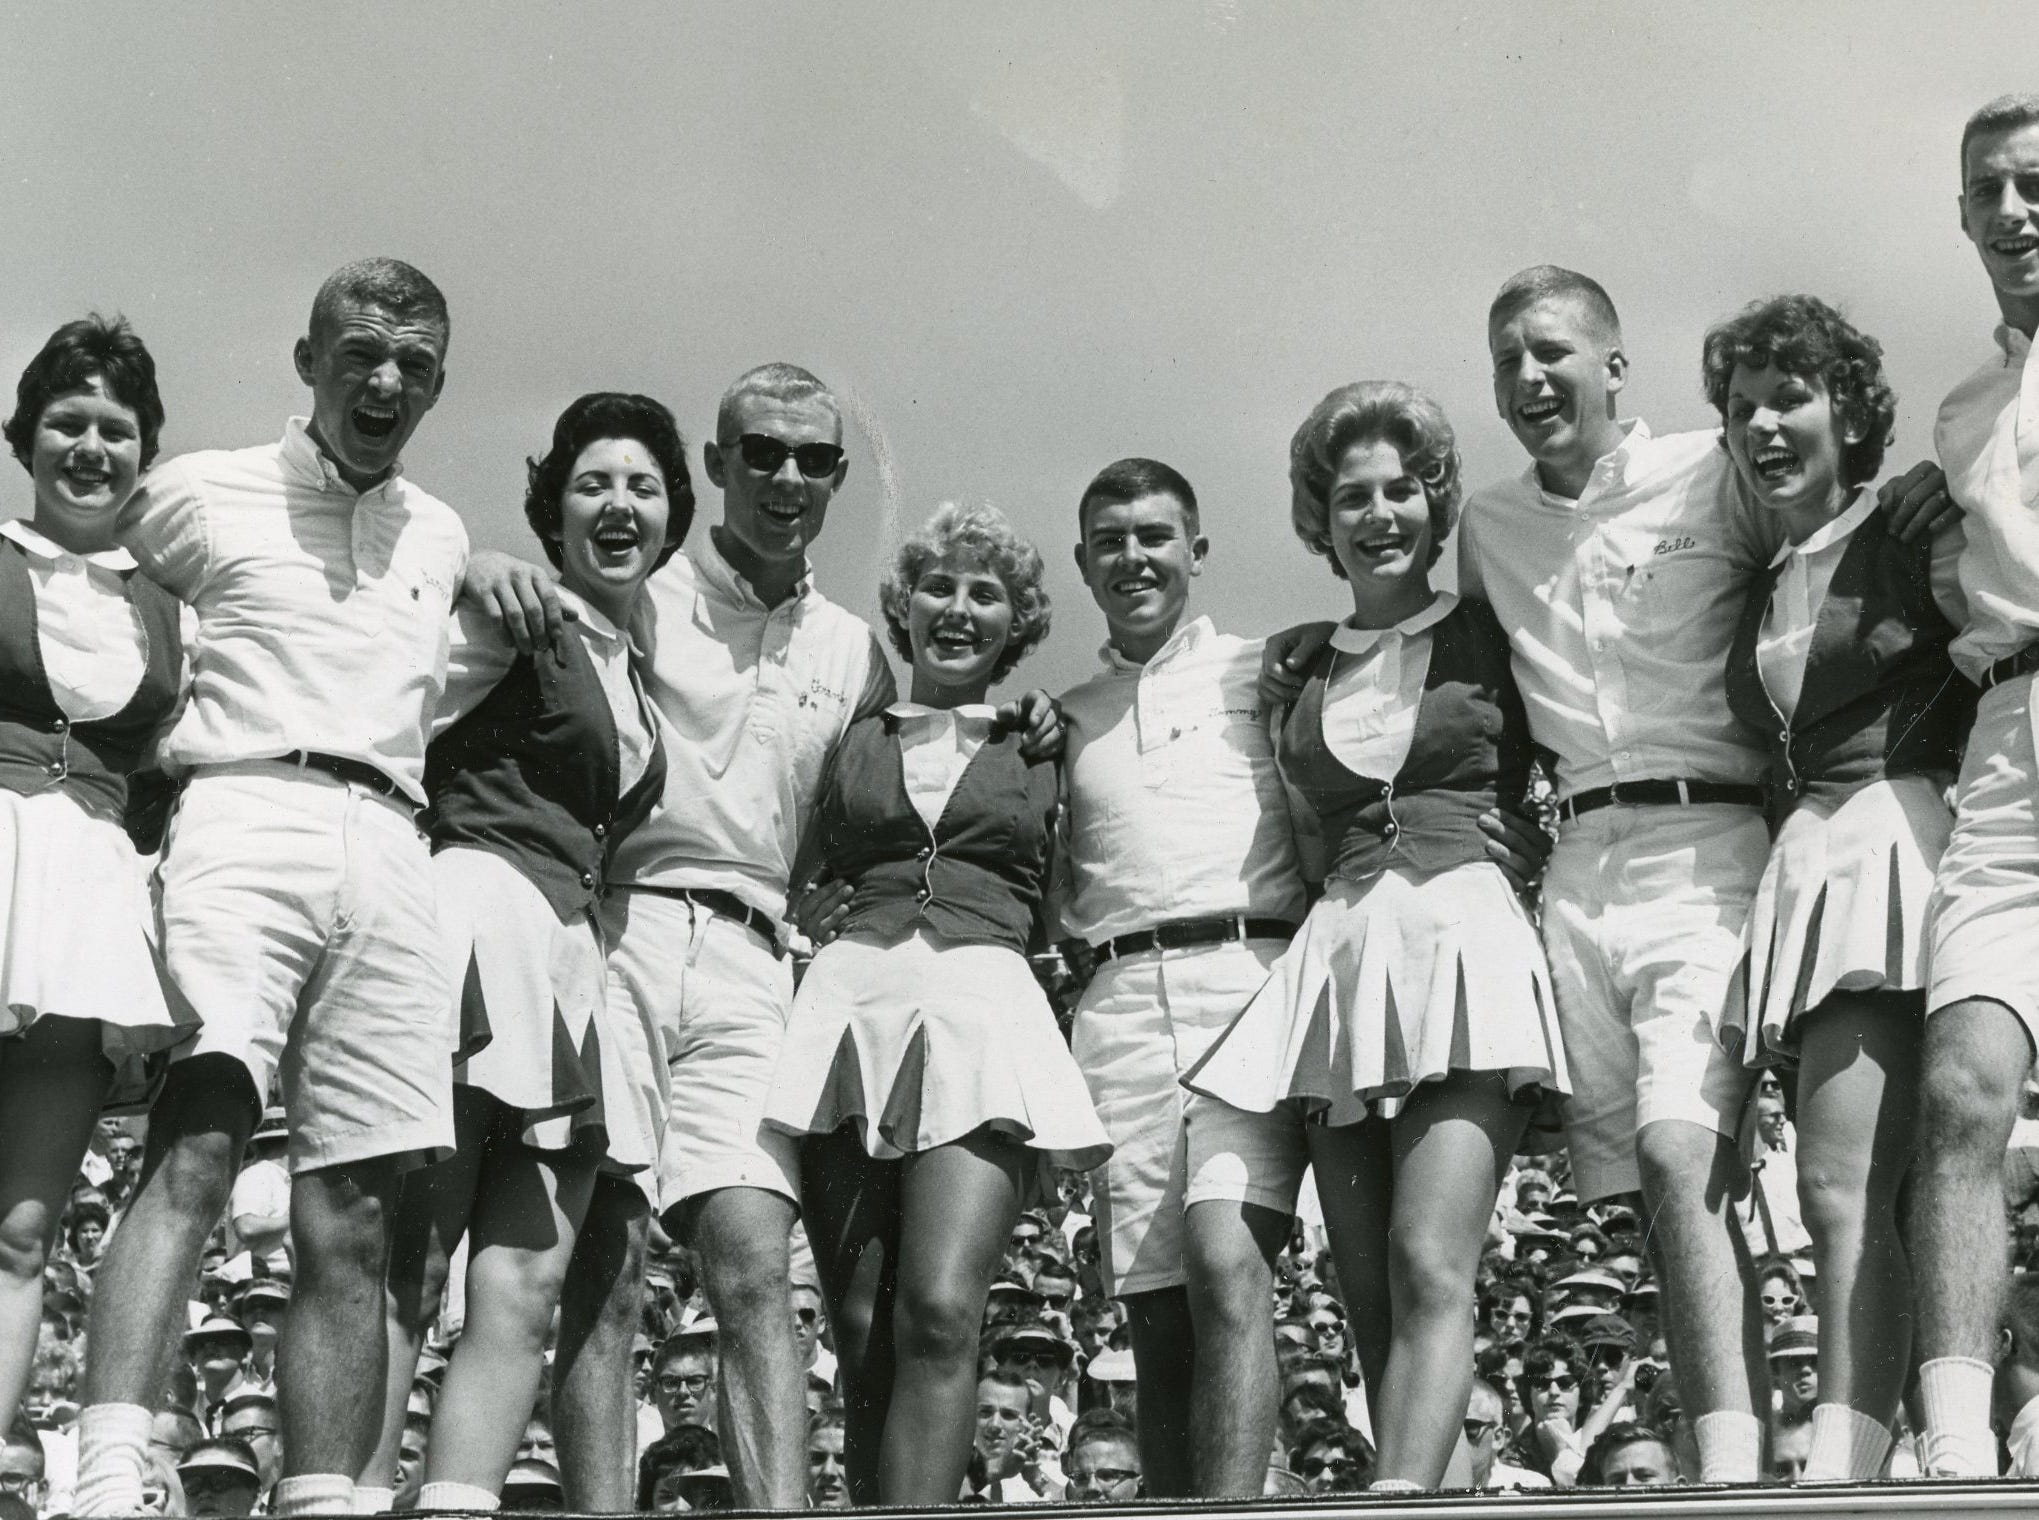 University of Tennessee cheerleaders included Ann Dixon, Gary Meyer, Martha Dempster, Frank Bowyer, Jr., Wallene Threadgill, Tommy Leek, Janet Stanford, Bill Cowan, Dola Faye Terry and Danny Nolan.